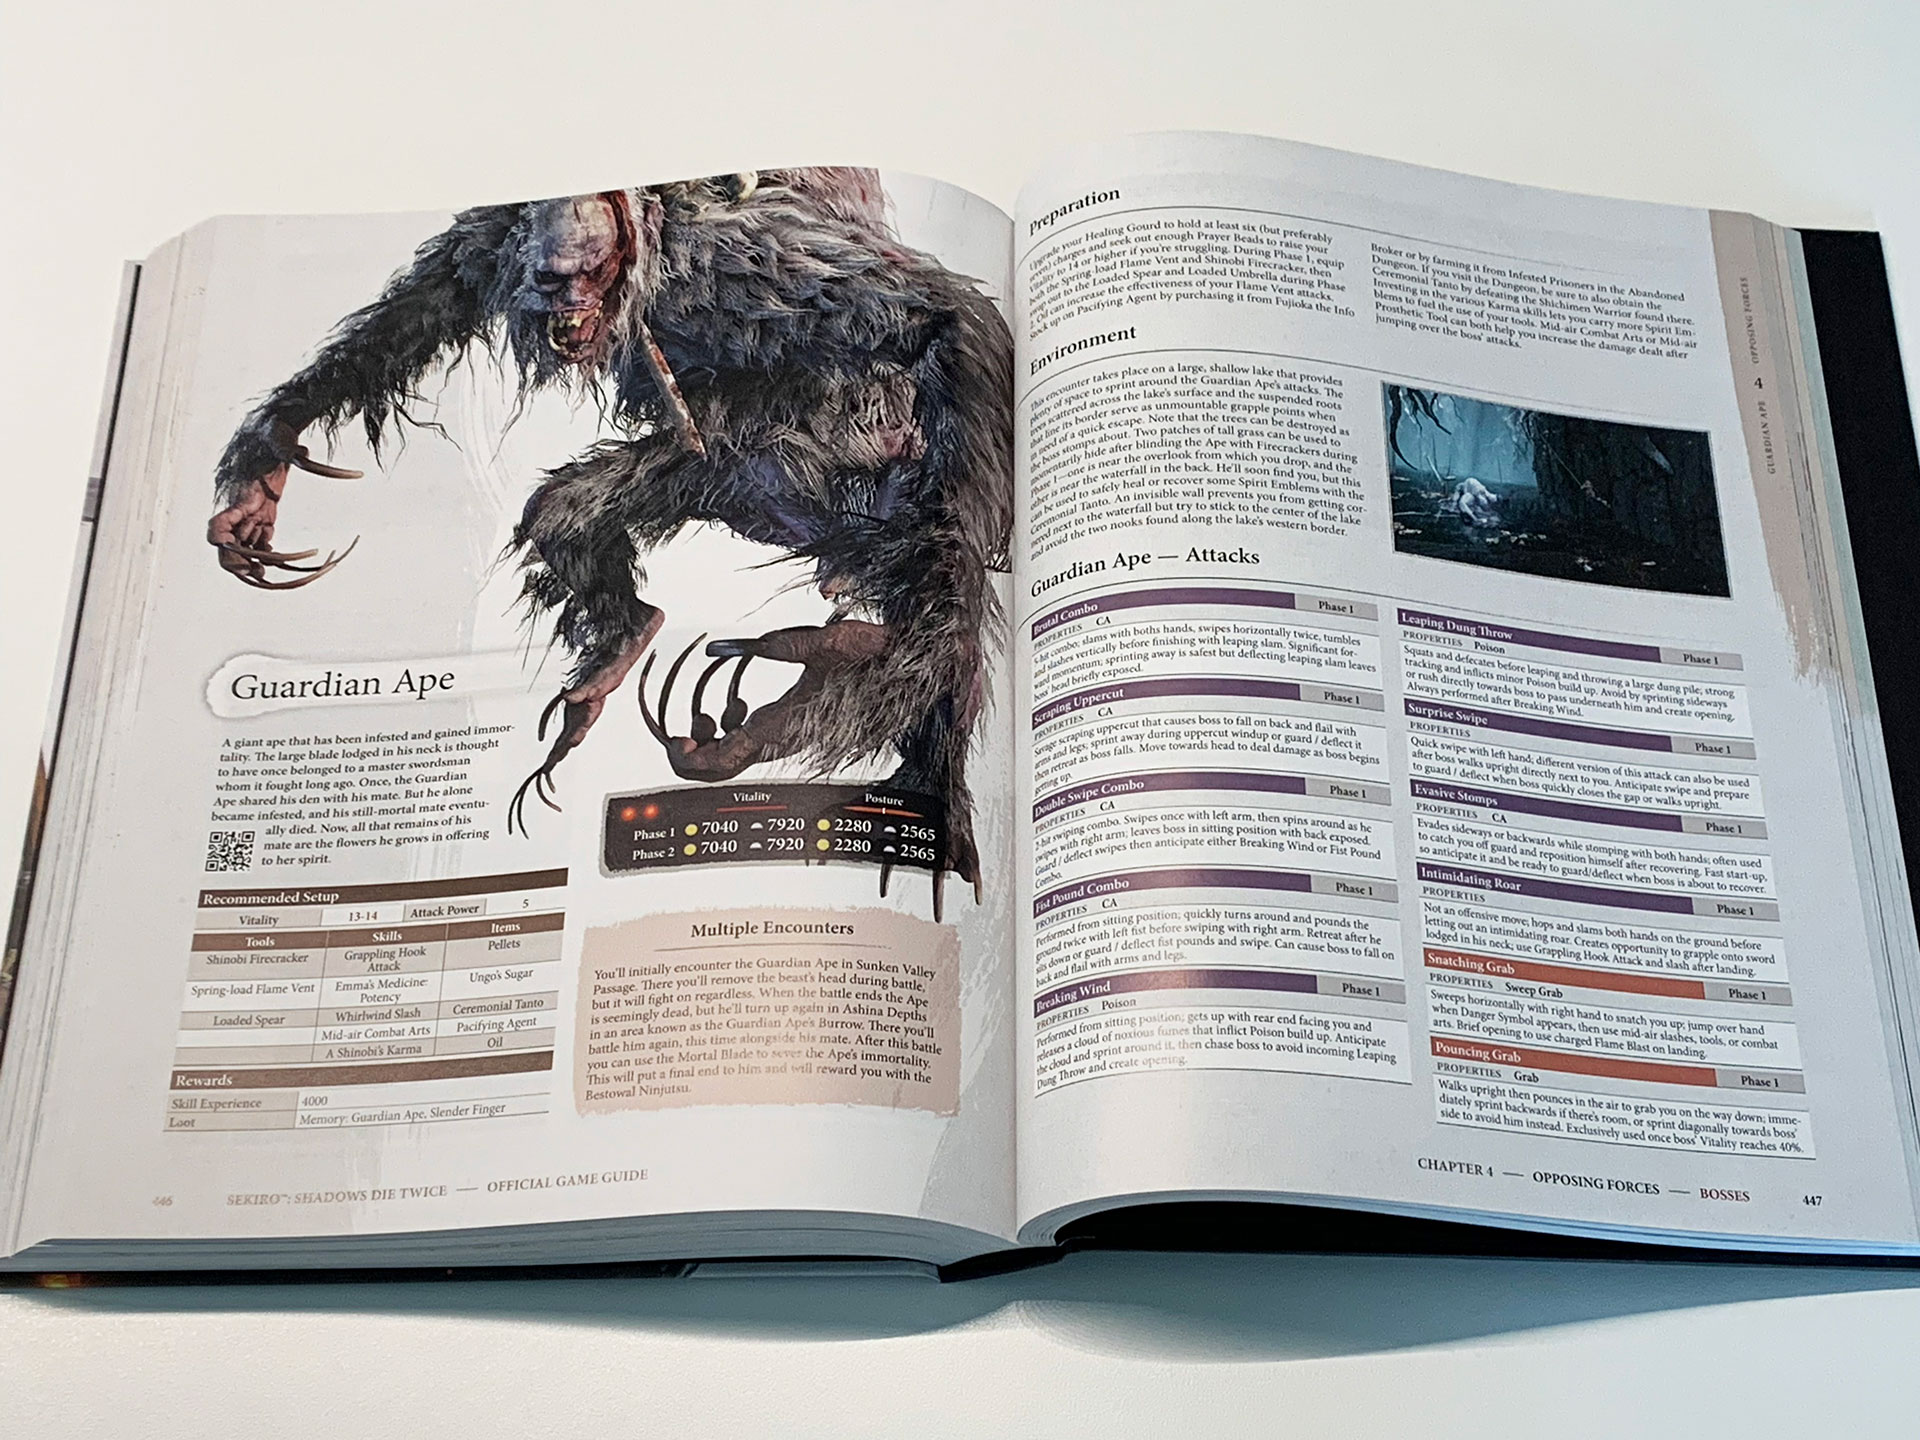 Sekiro Strategies: The Sekiro™: Shadows Die Twice, Official Game Guide is Now Available to Order.